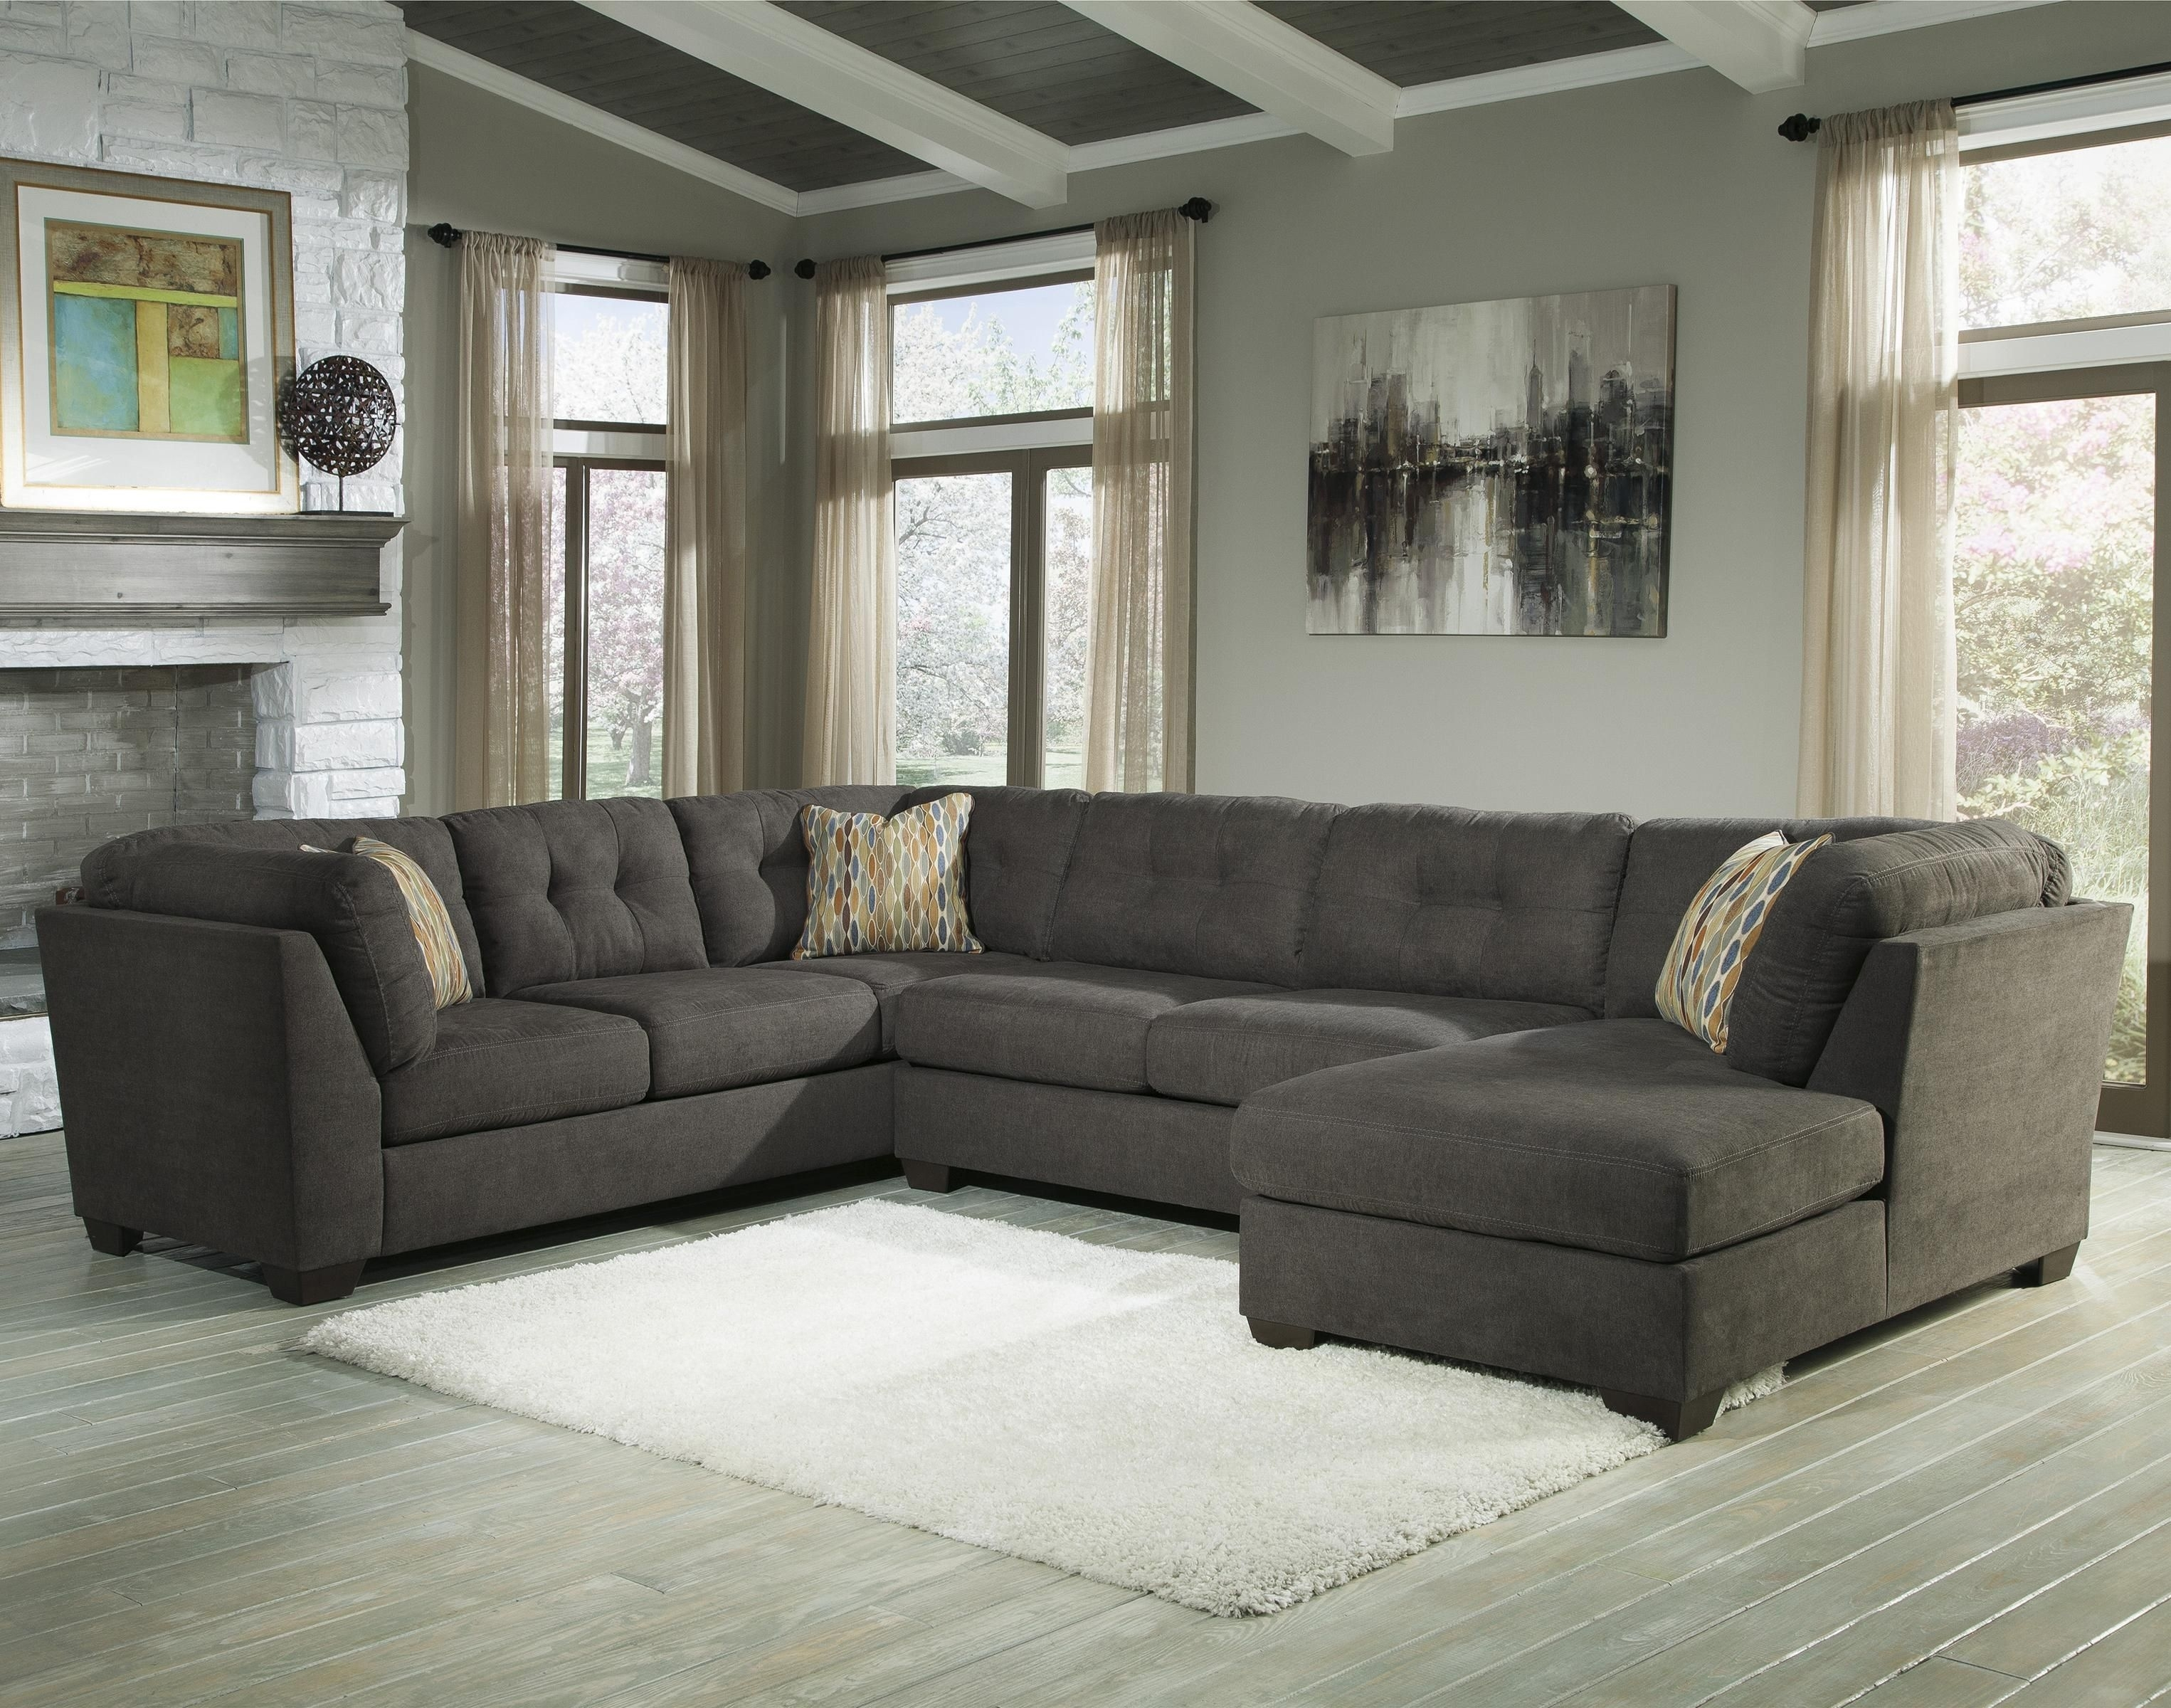 Delta City – Steel 3 Piece Modular Sectional With Right Chaise Regarding Haven Blue Steel 3 Piece Sectionals (Image 10 of 25)